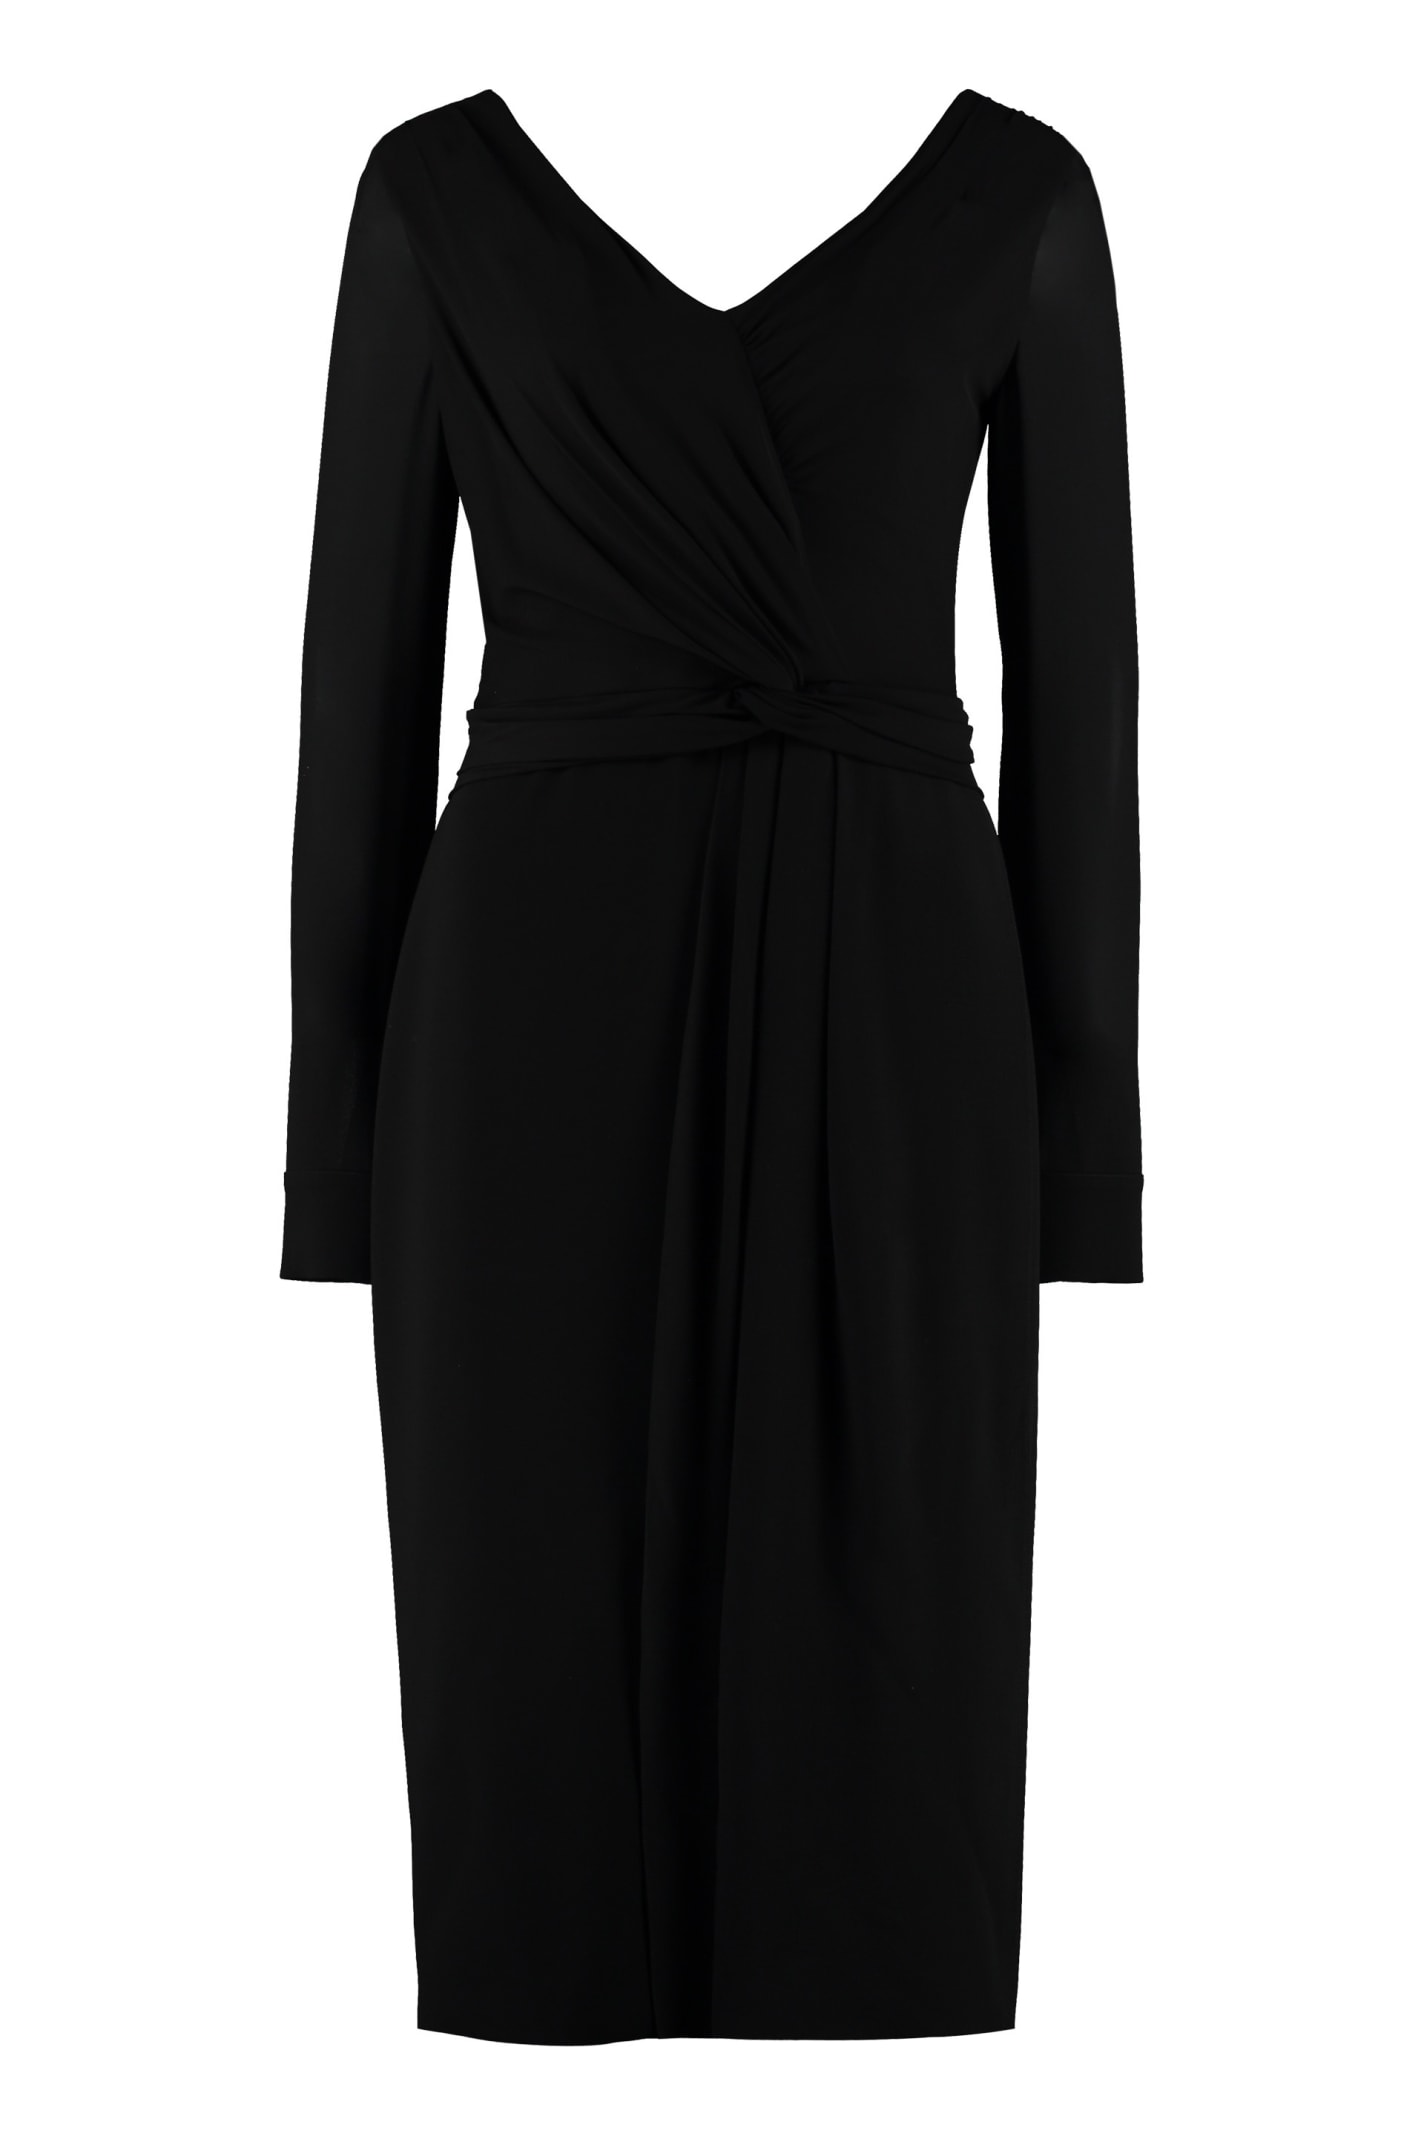 Max Mara Arad Draped Panels Layered Sheath Dress